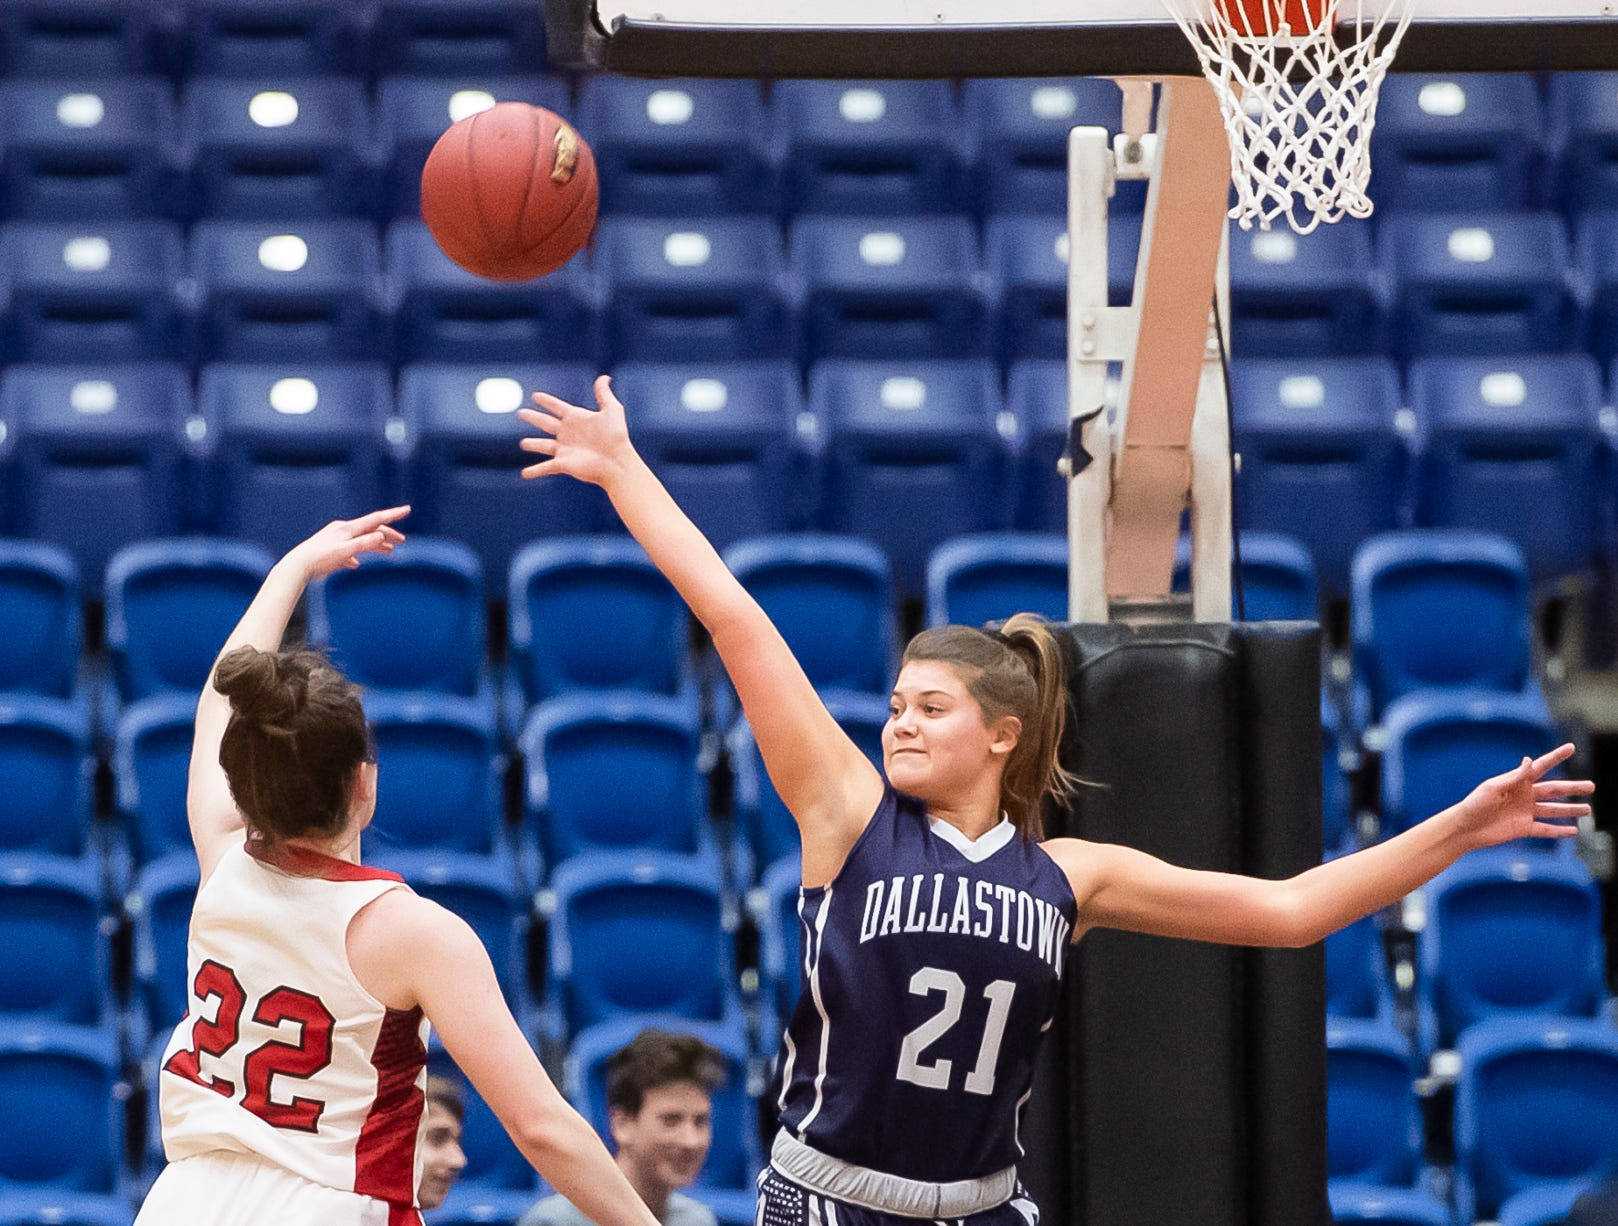 Cumberland Valley's Kylie Holcomb shoots over Dallastown's Madi Moore in the District 3 6A girls championship game at Santander Arena in Reading, Pa., Friday, March 1, 2019. The Eagles won 33-27.